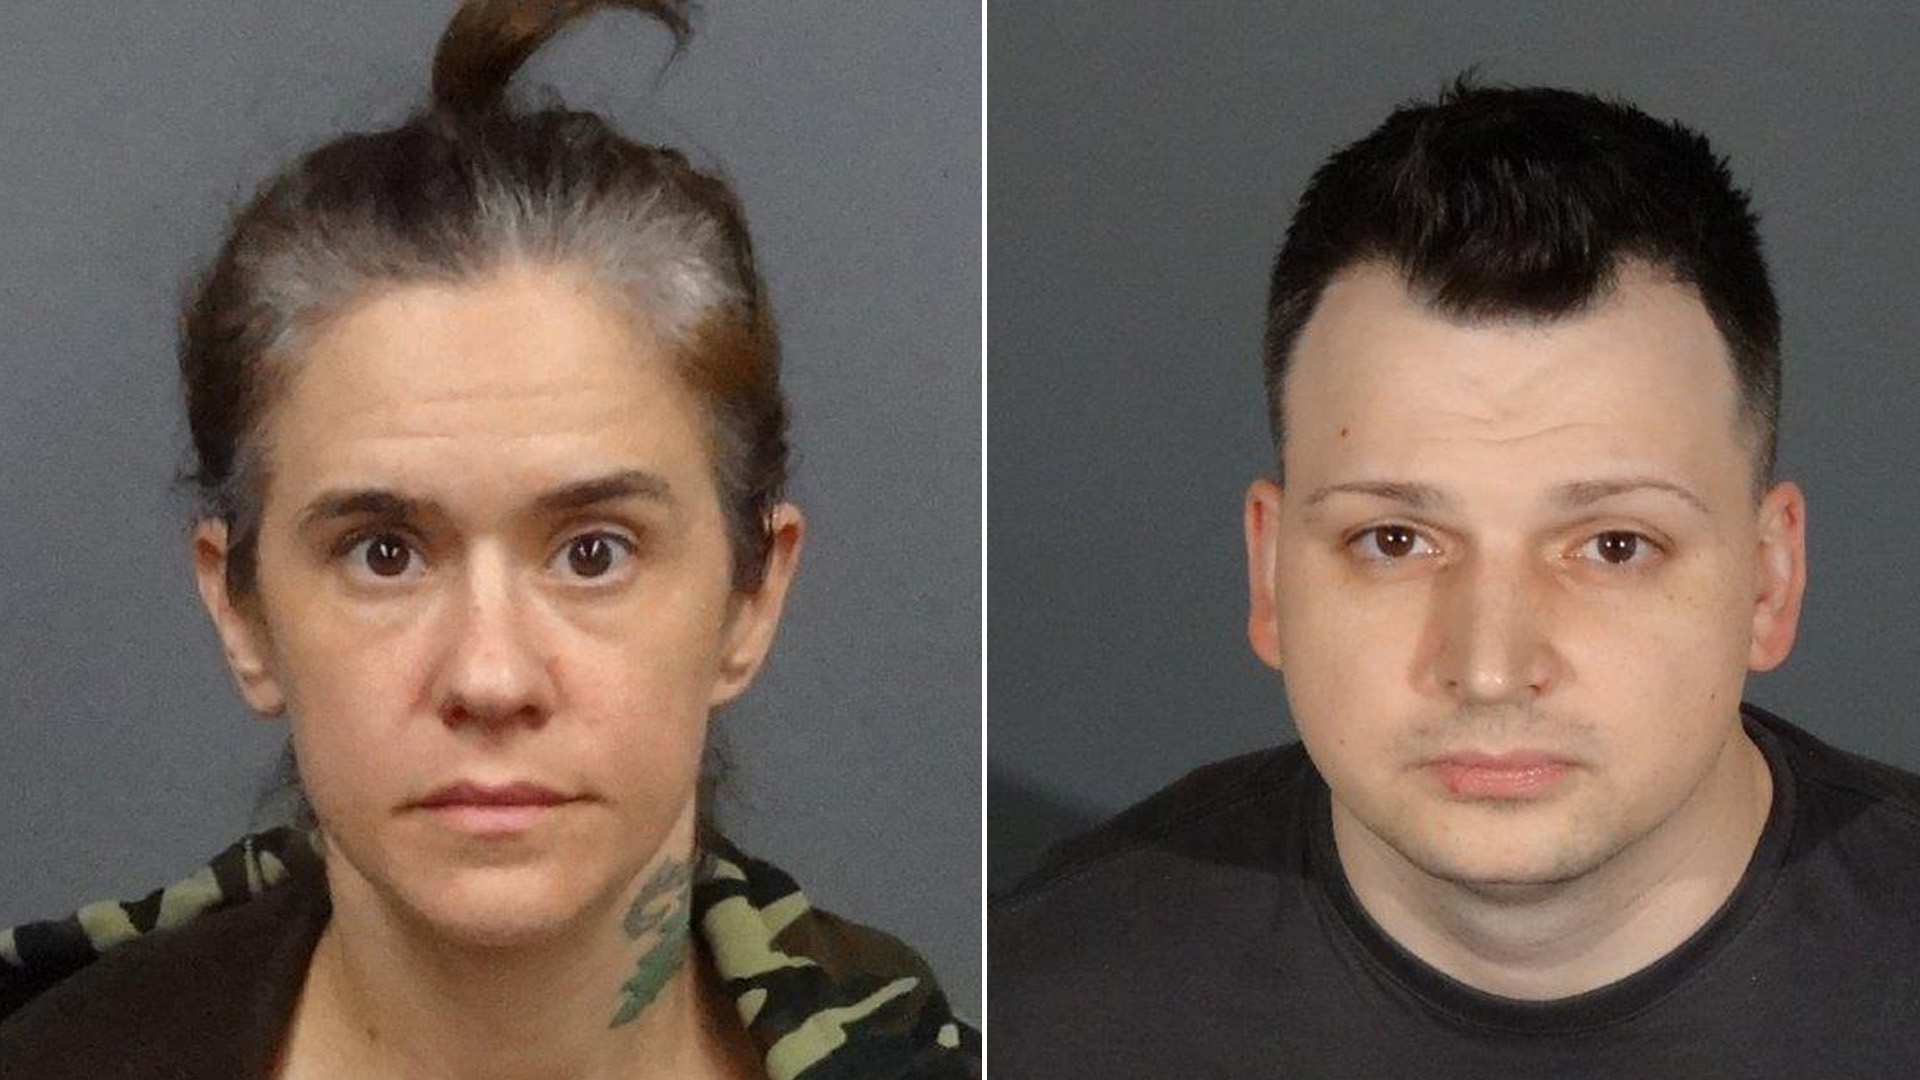 Erin Jill Maloney, 37 and Richard A Rapp, 34, were arrested after their 9-month-old was hospitalized with cocaine and meth in her bloodstream. (West Covina Police Department)